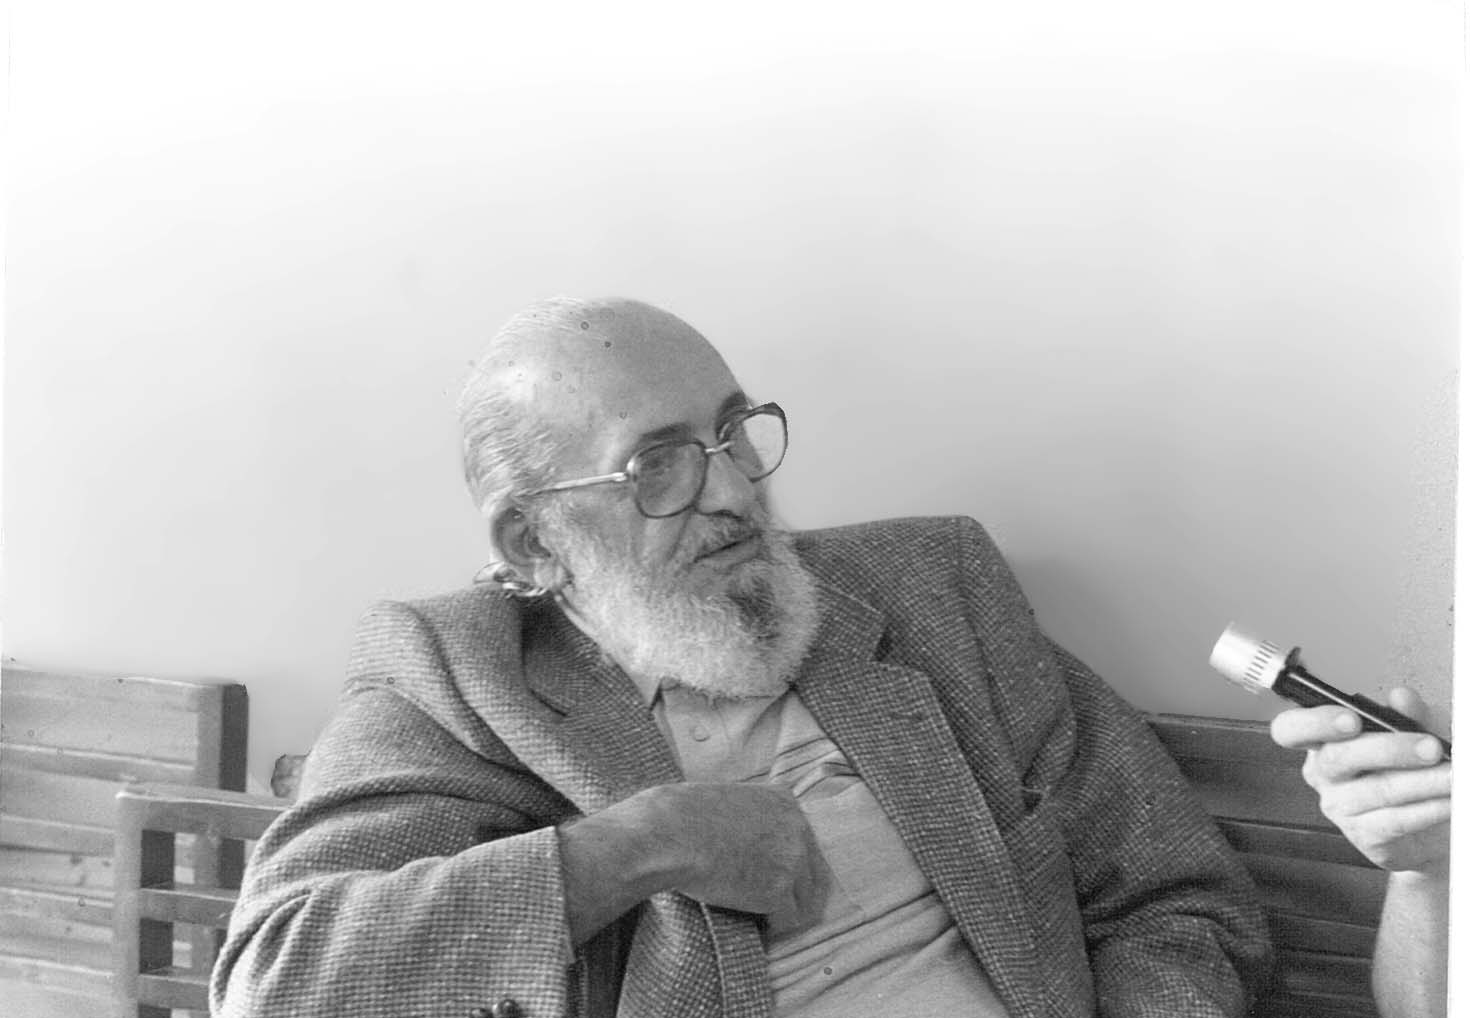 Paulo Freire Visting the Tenderloin Reflection Center circa 1983-85 at Bible Study Group at St. Boniface